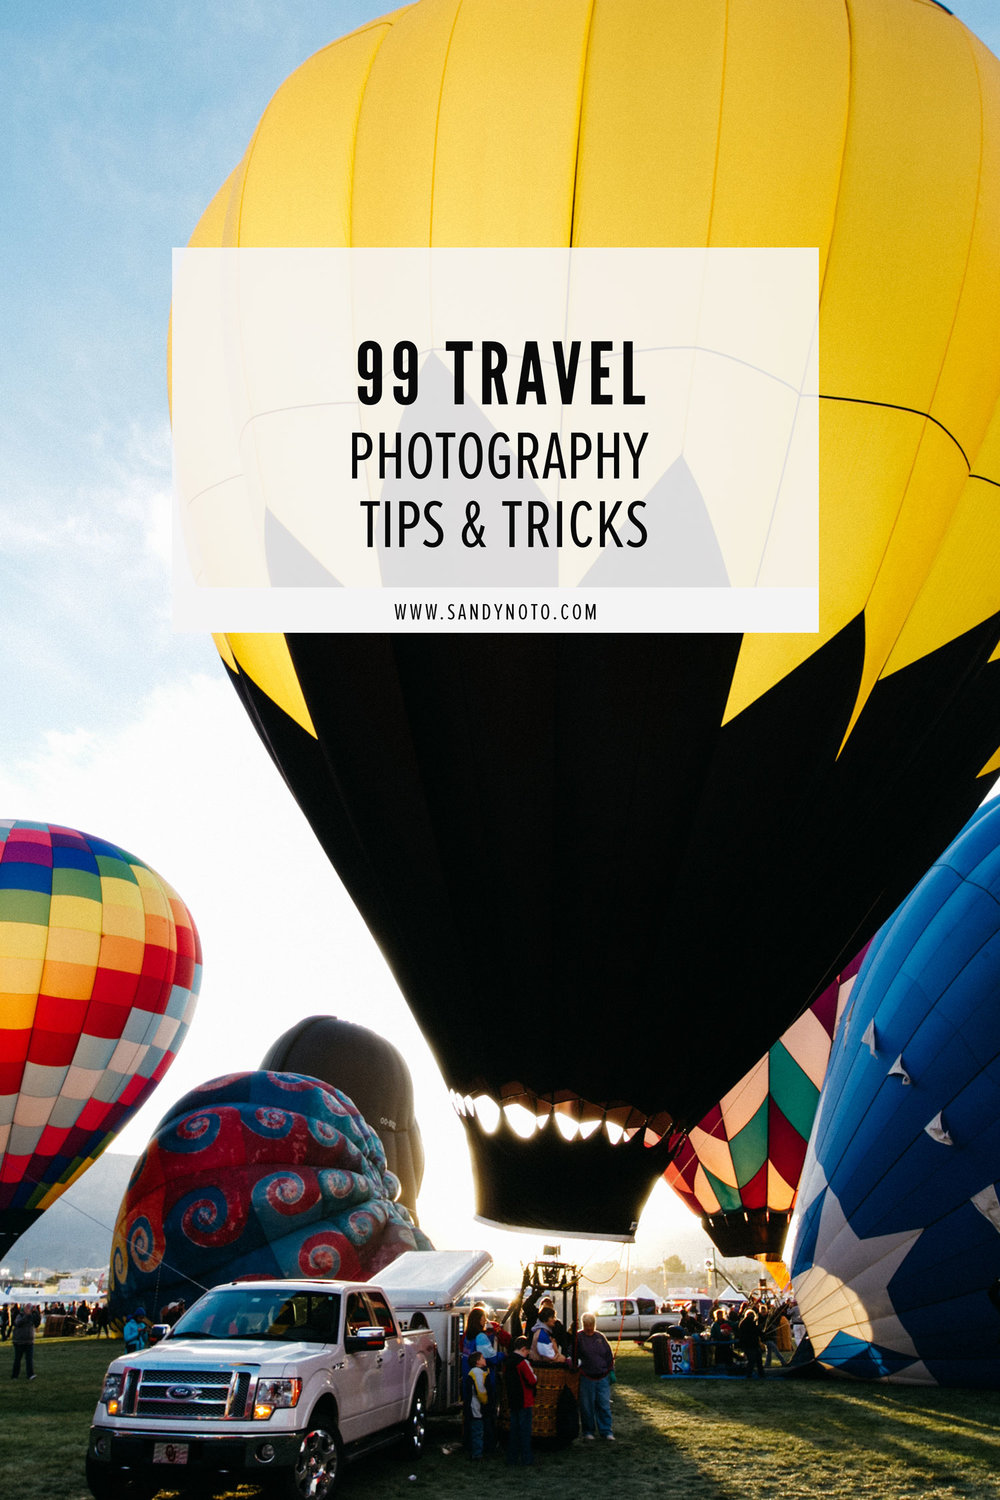 99 Travel Photography Tips & Tricks